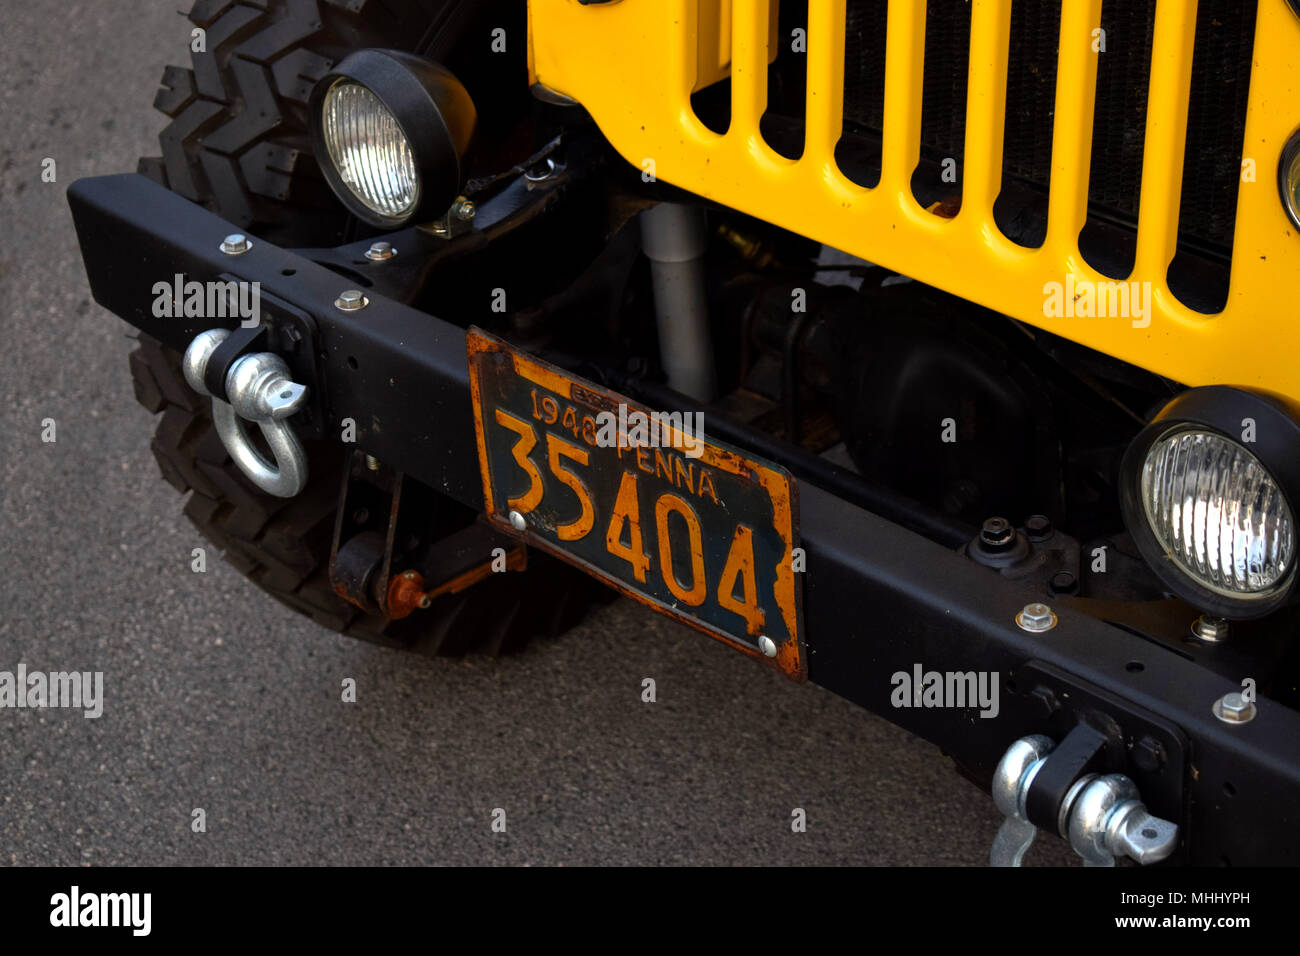 Yellow License Plate Stock Photos & Yellow License Plate Stock ...